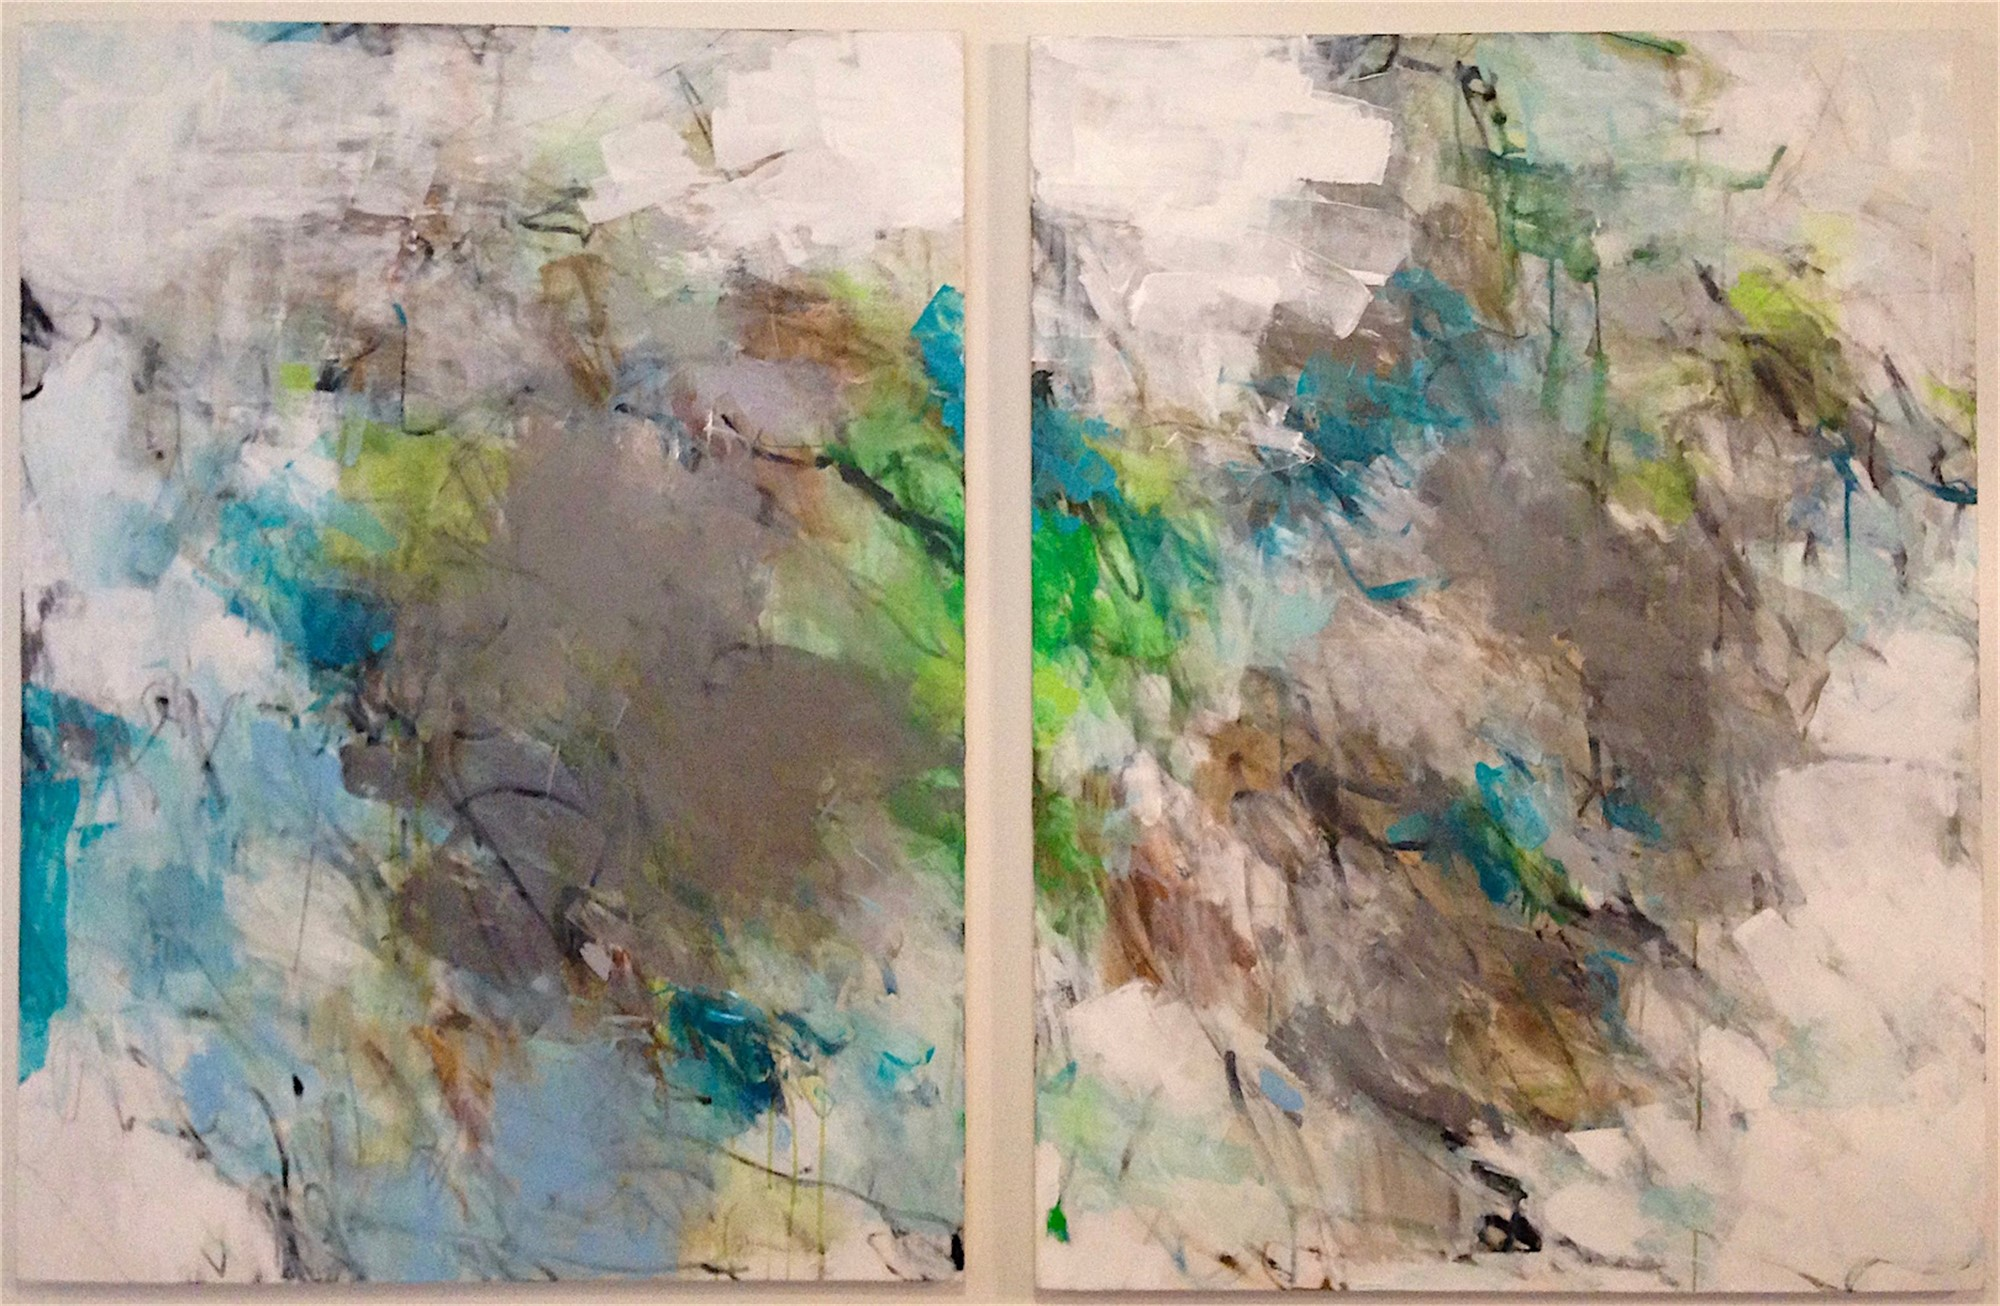 Drifting Clouds I and II by Charlotte Foust